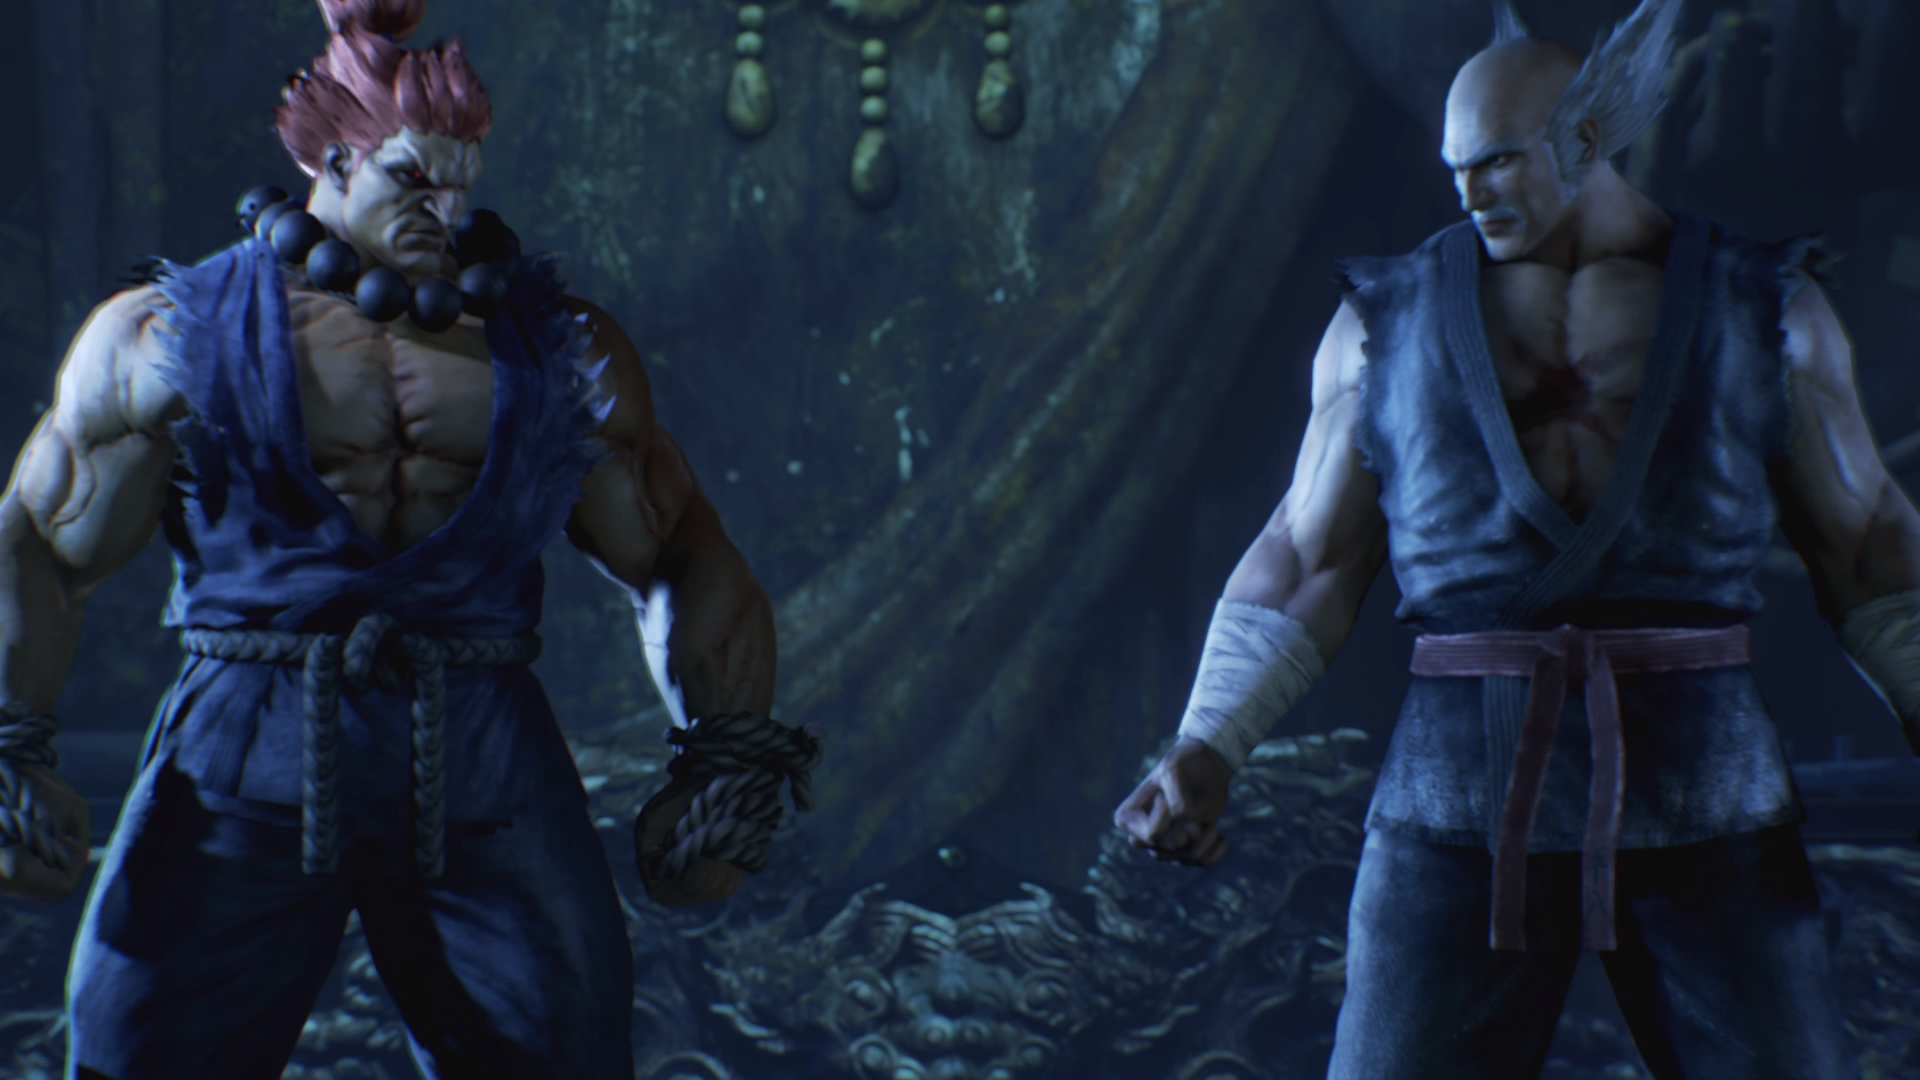 Akuma is somewhat central to the story.